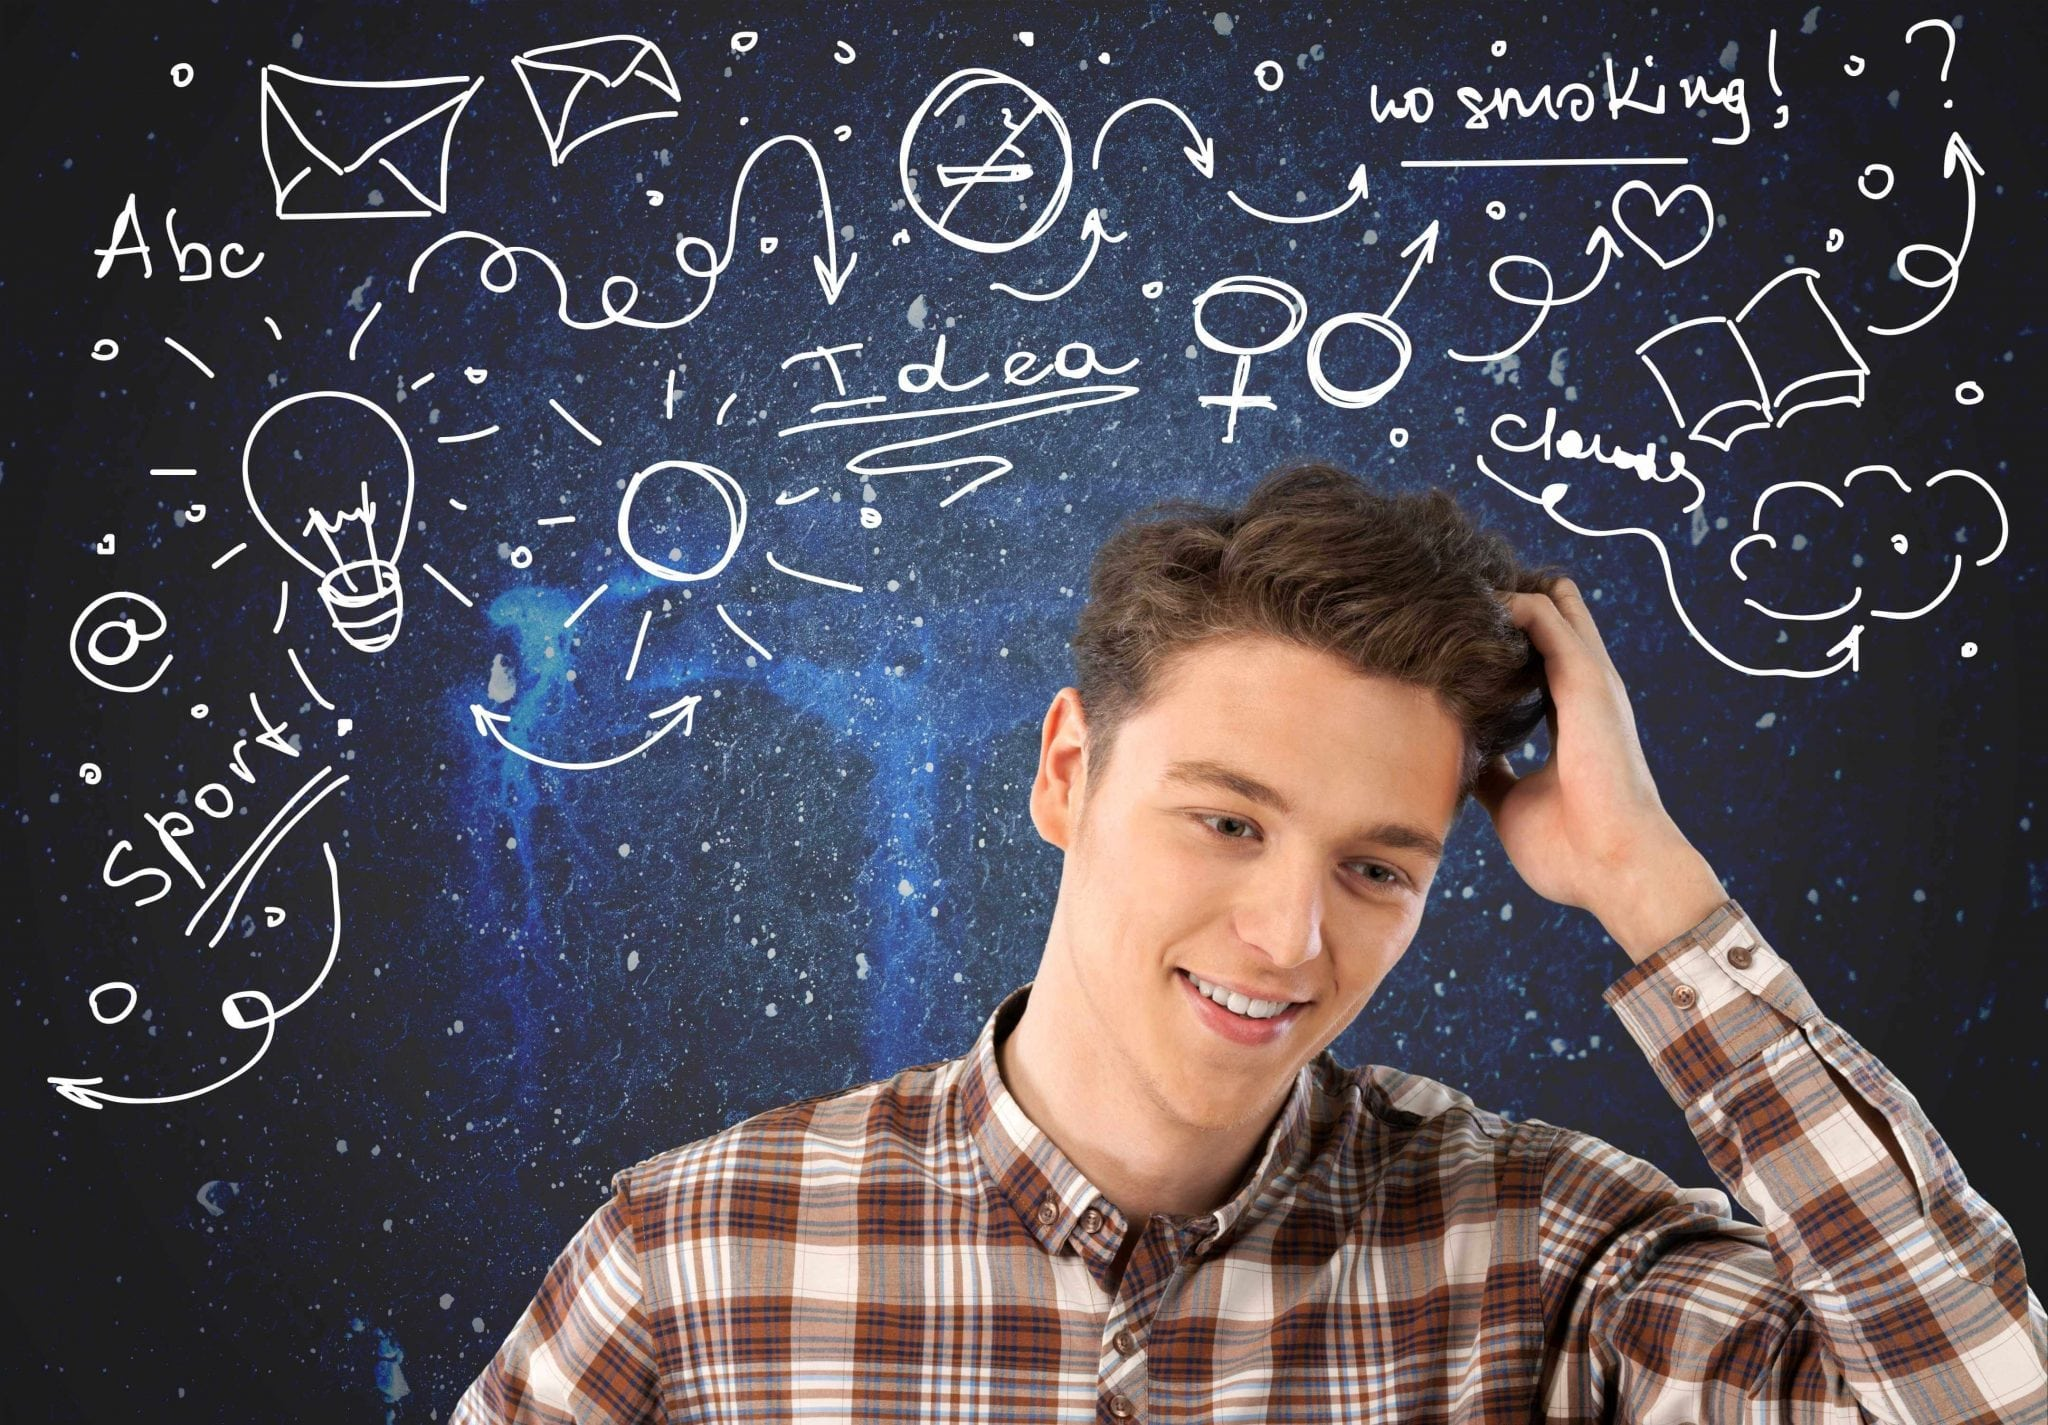 How to communicate effectively with your teen